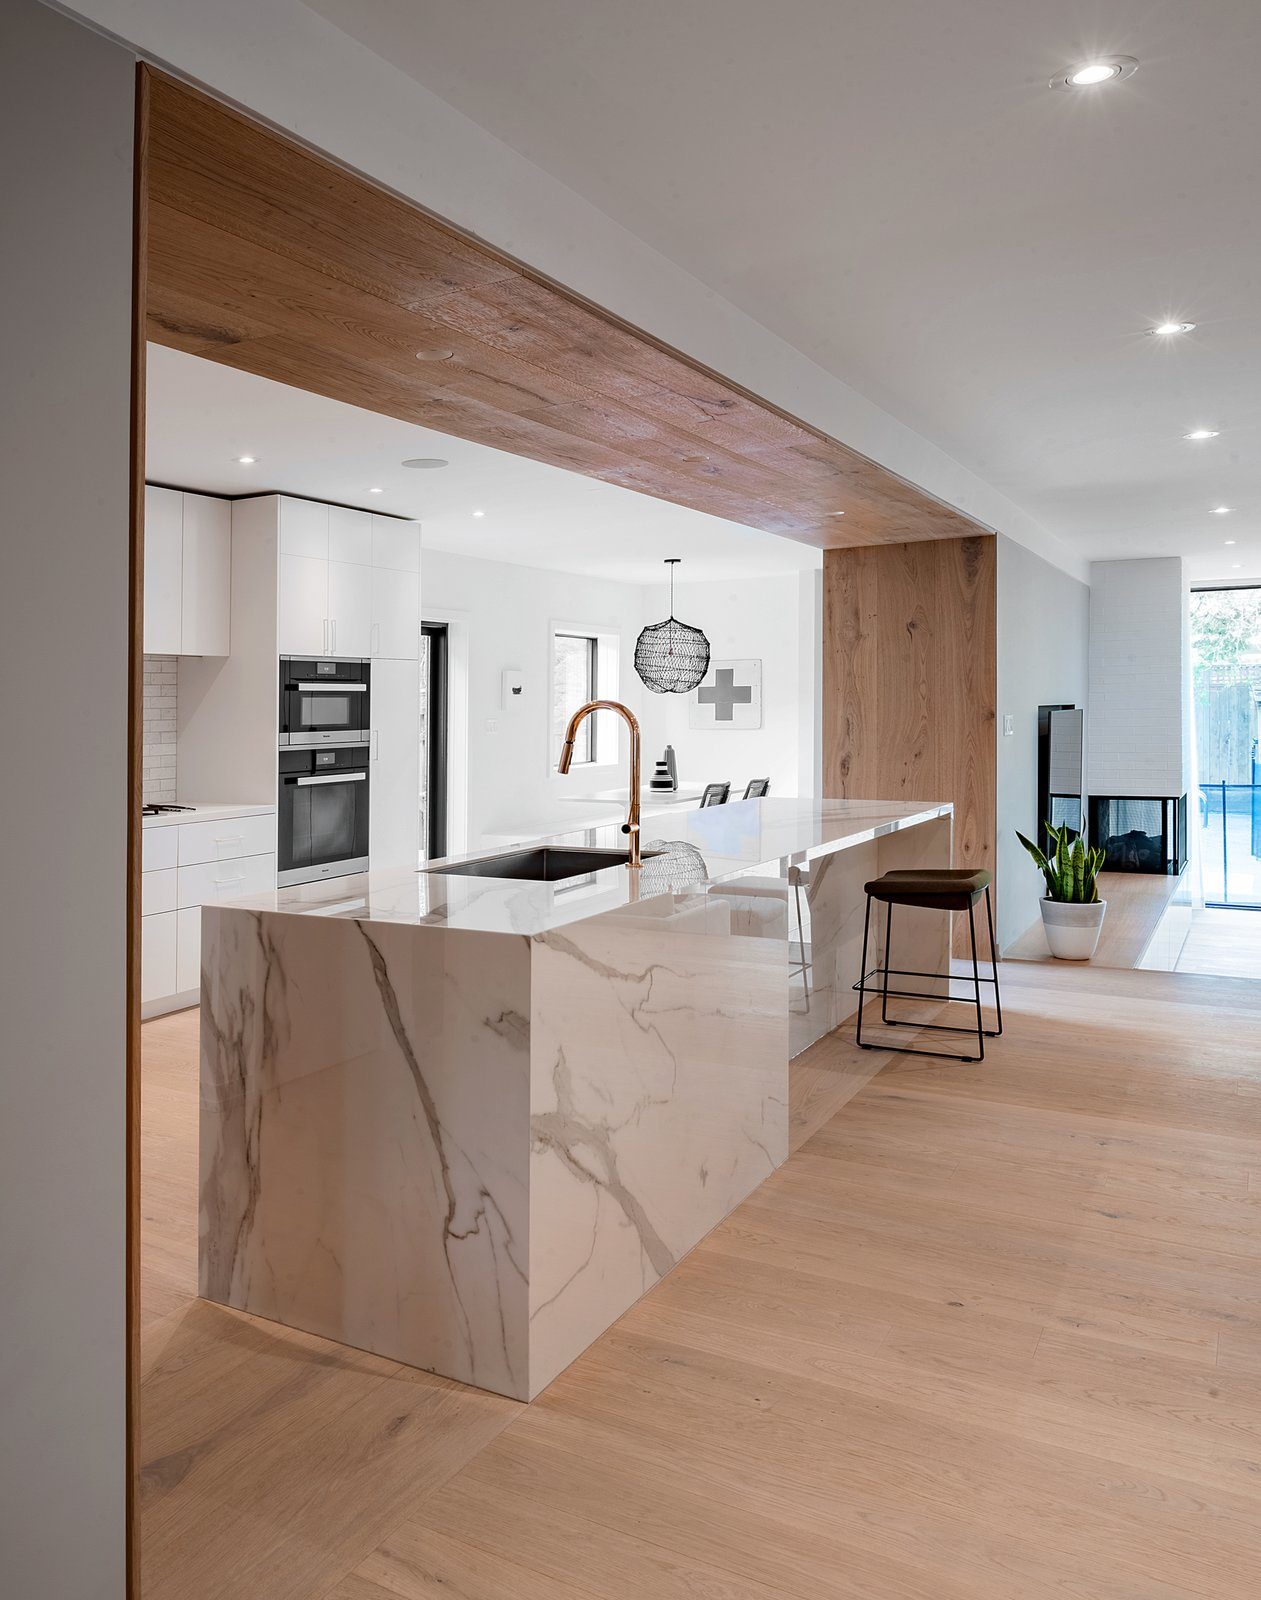 Tagged: Kitchen, Quartzite Counter, White Cabinet, Light Hardwood Floor, Ceiling Lighting, Subway Tile Backsplashe, Recessed Lighting, Undermount Sink, and Wall Oven.  Richview Residence by StudioAC